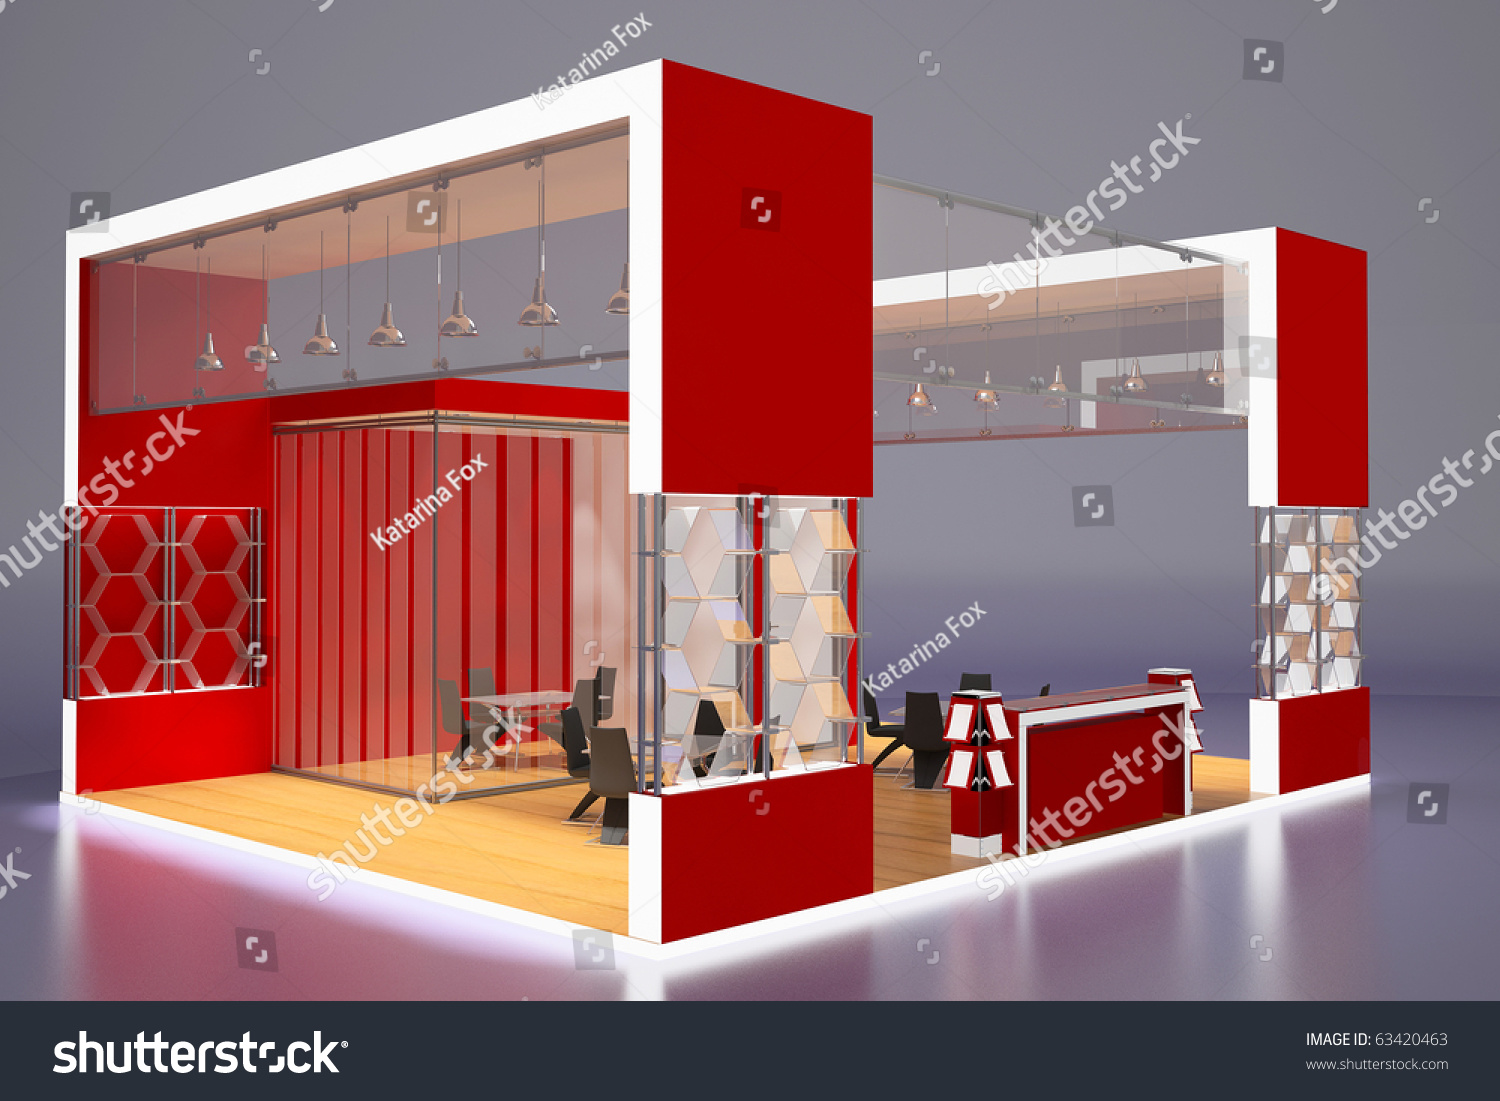 Modern Exhibition Stand Goal : D render of modern red exhibition stand perspective